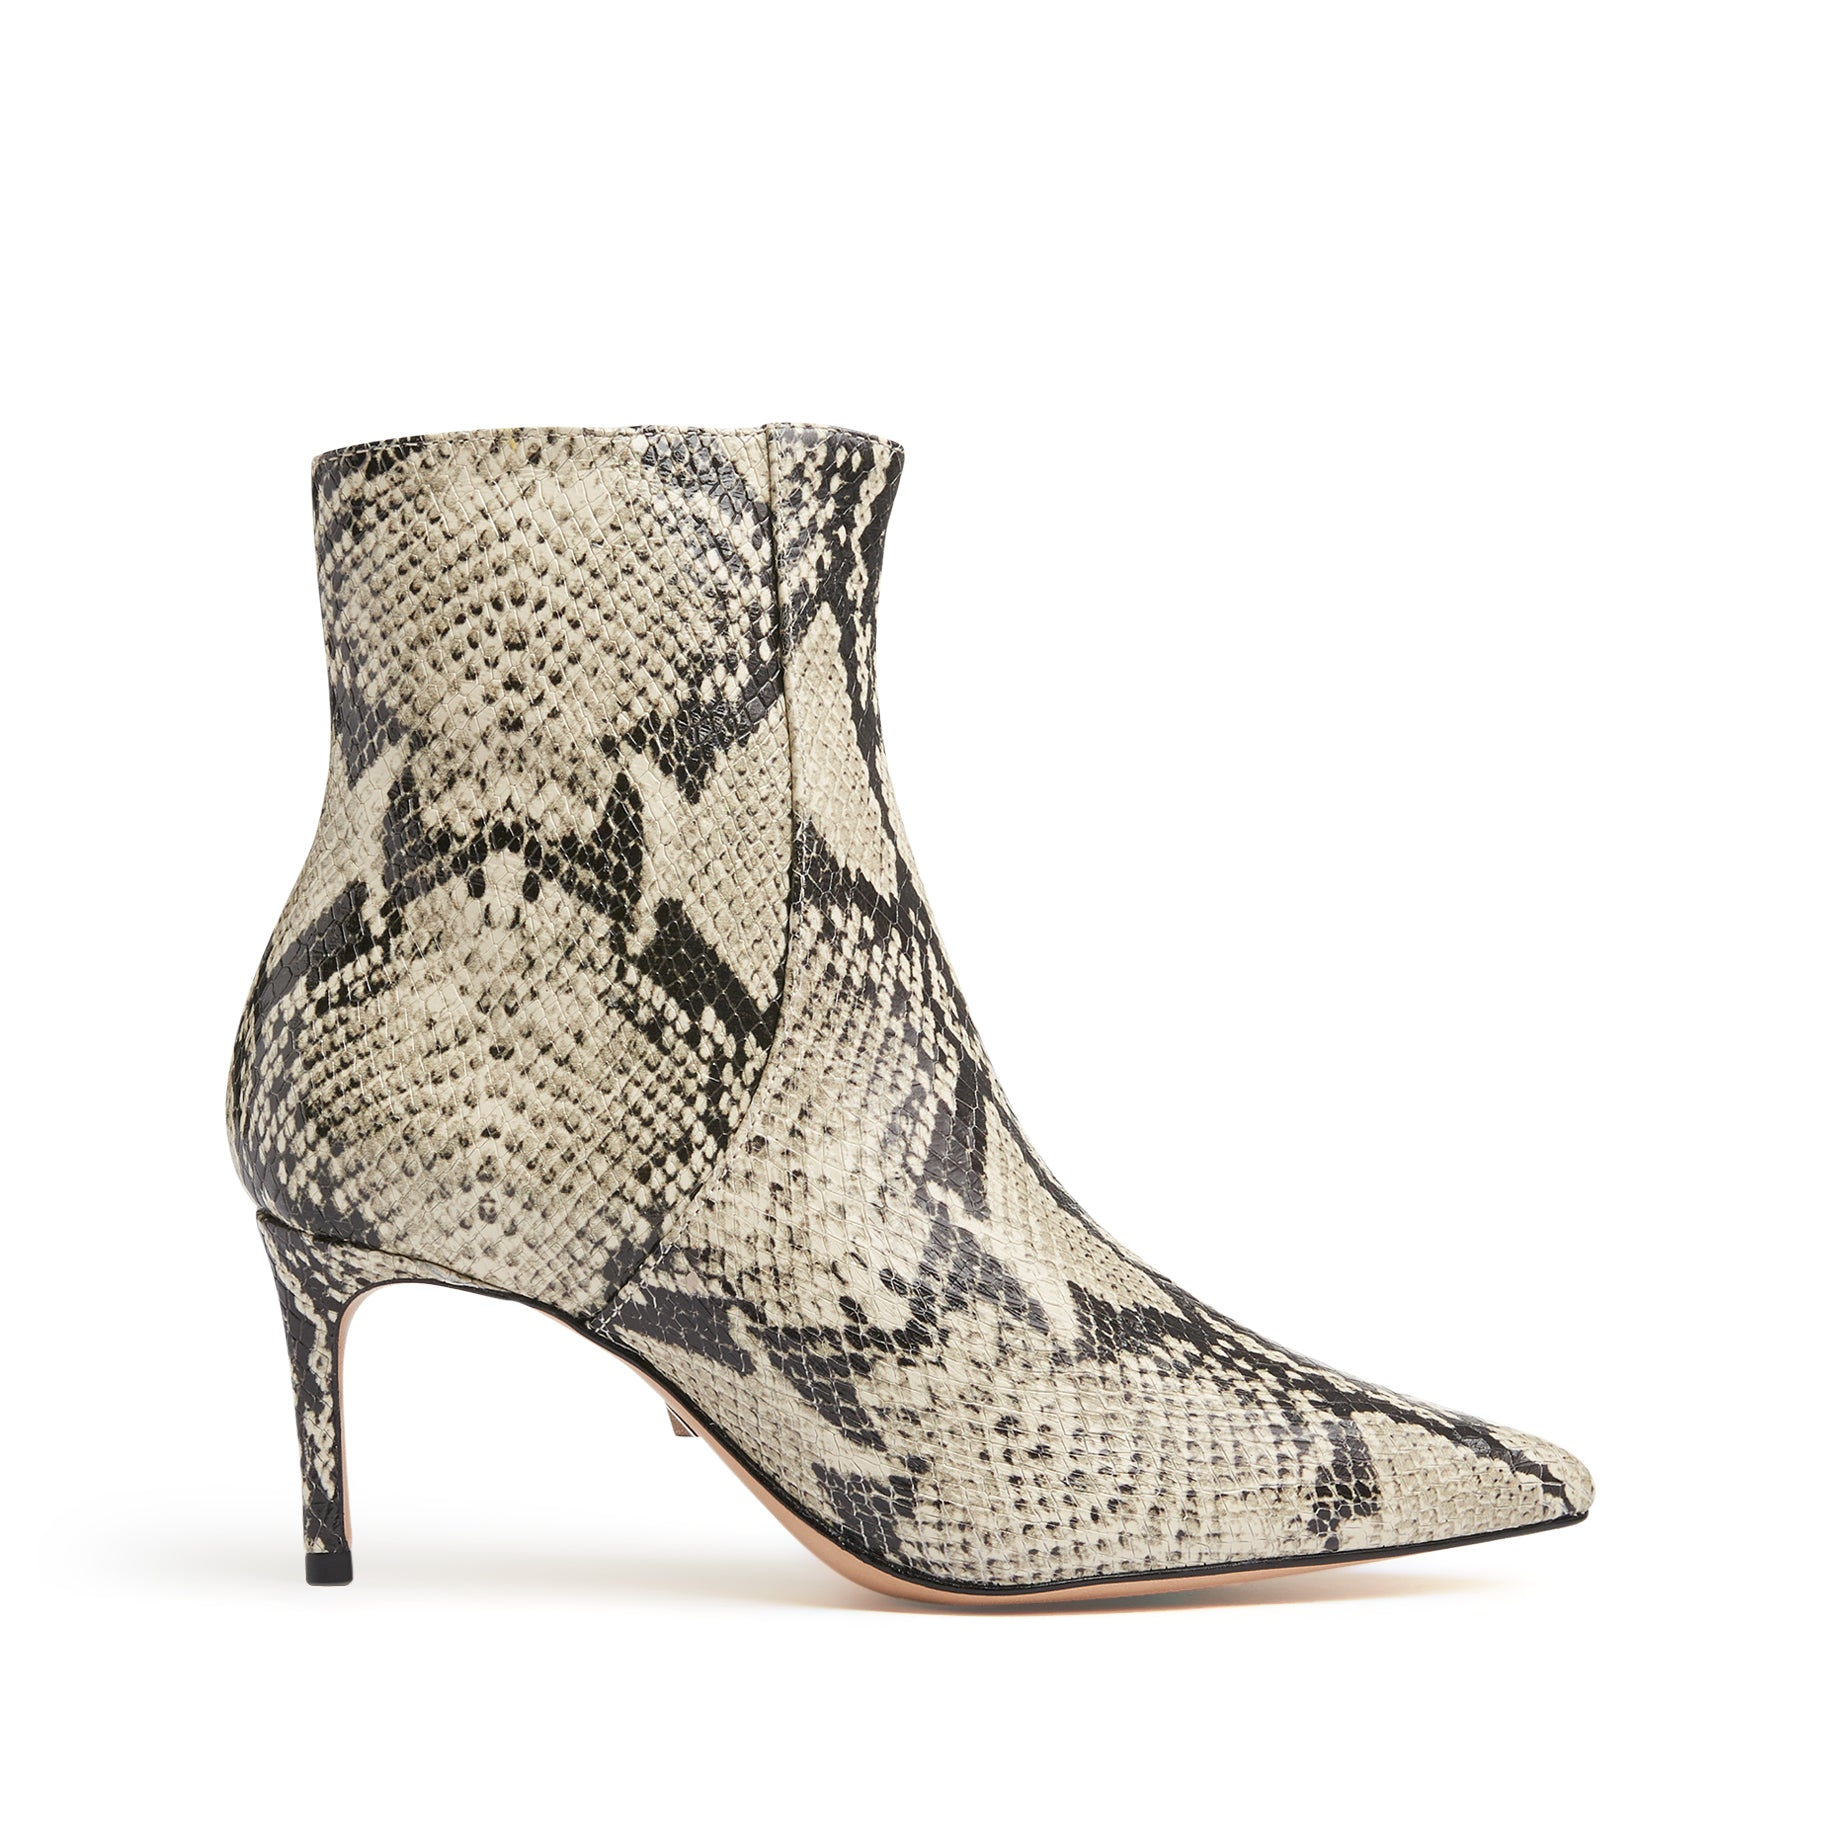 Bette Booties Natural Snake Snake Embossed Leather